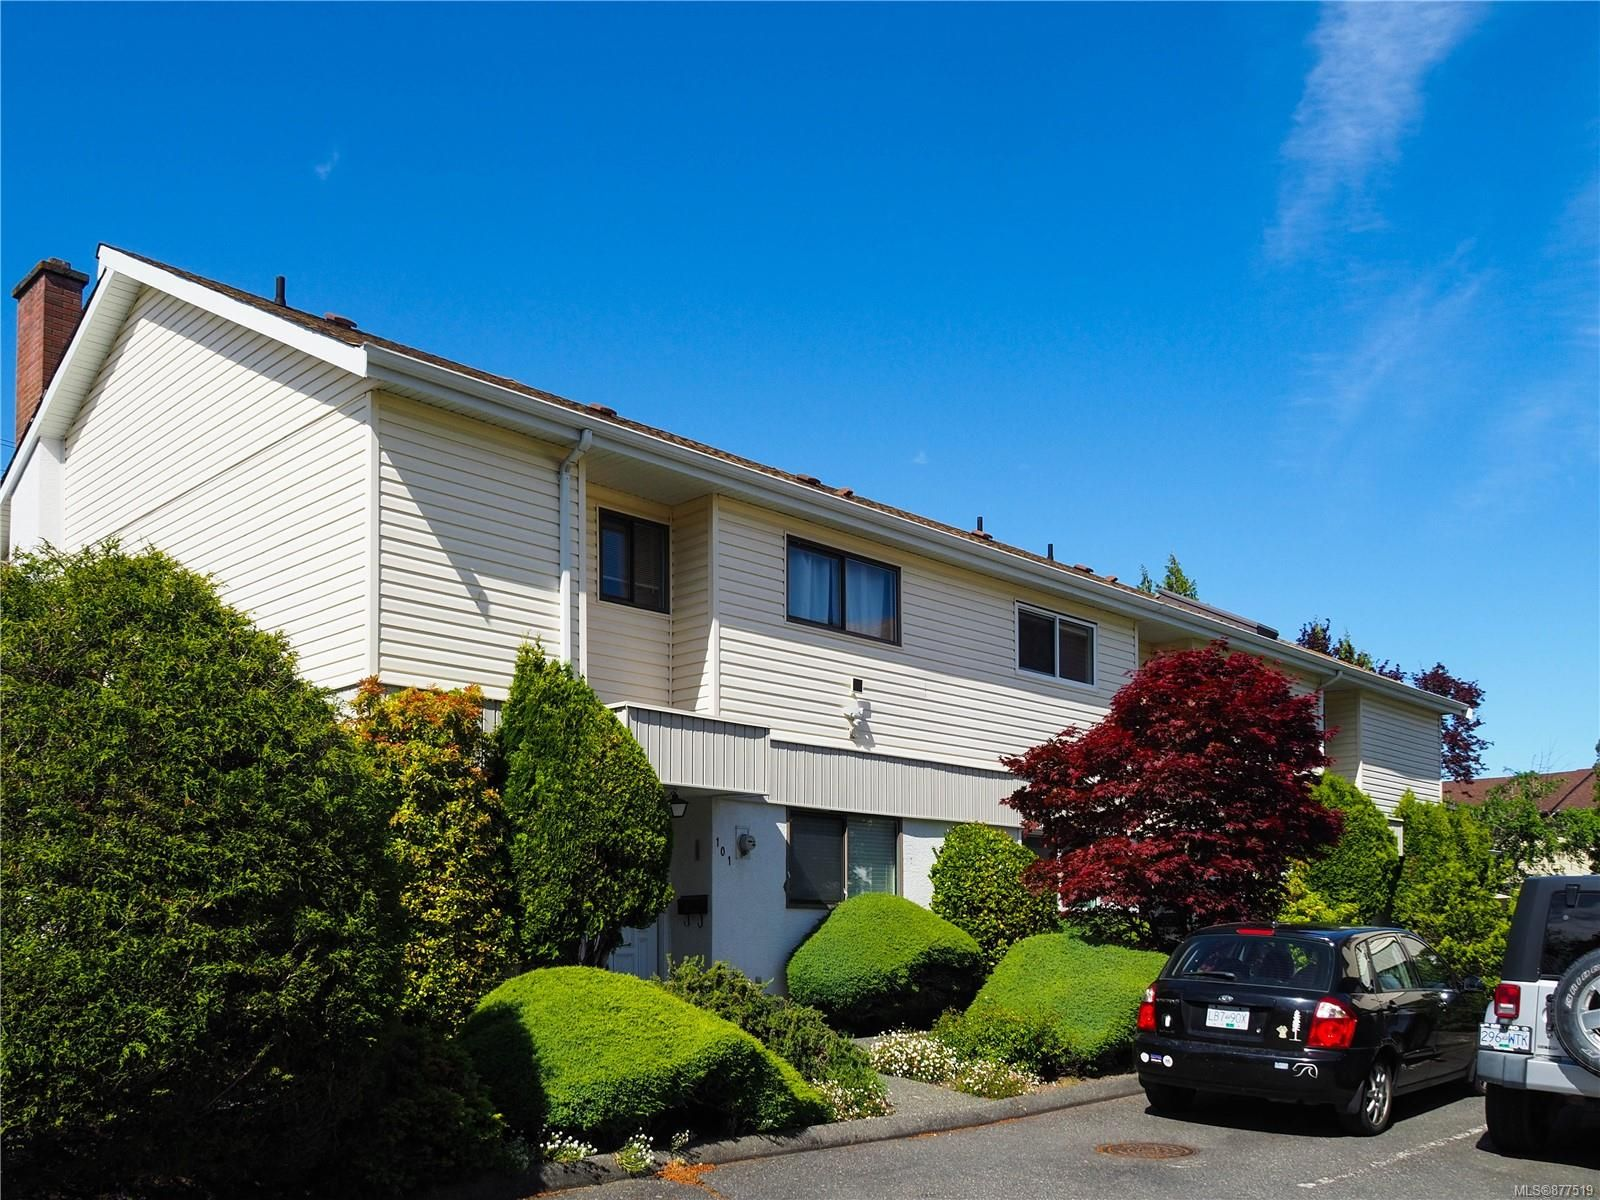 Main Photo: 102 1709 McKenzie Ave in : SE Mt Tolmie Row/Townhouse for sale (Saanich East)  : MLS®# 877519